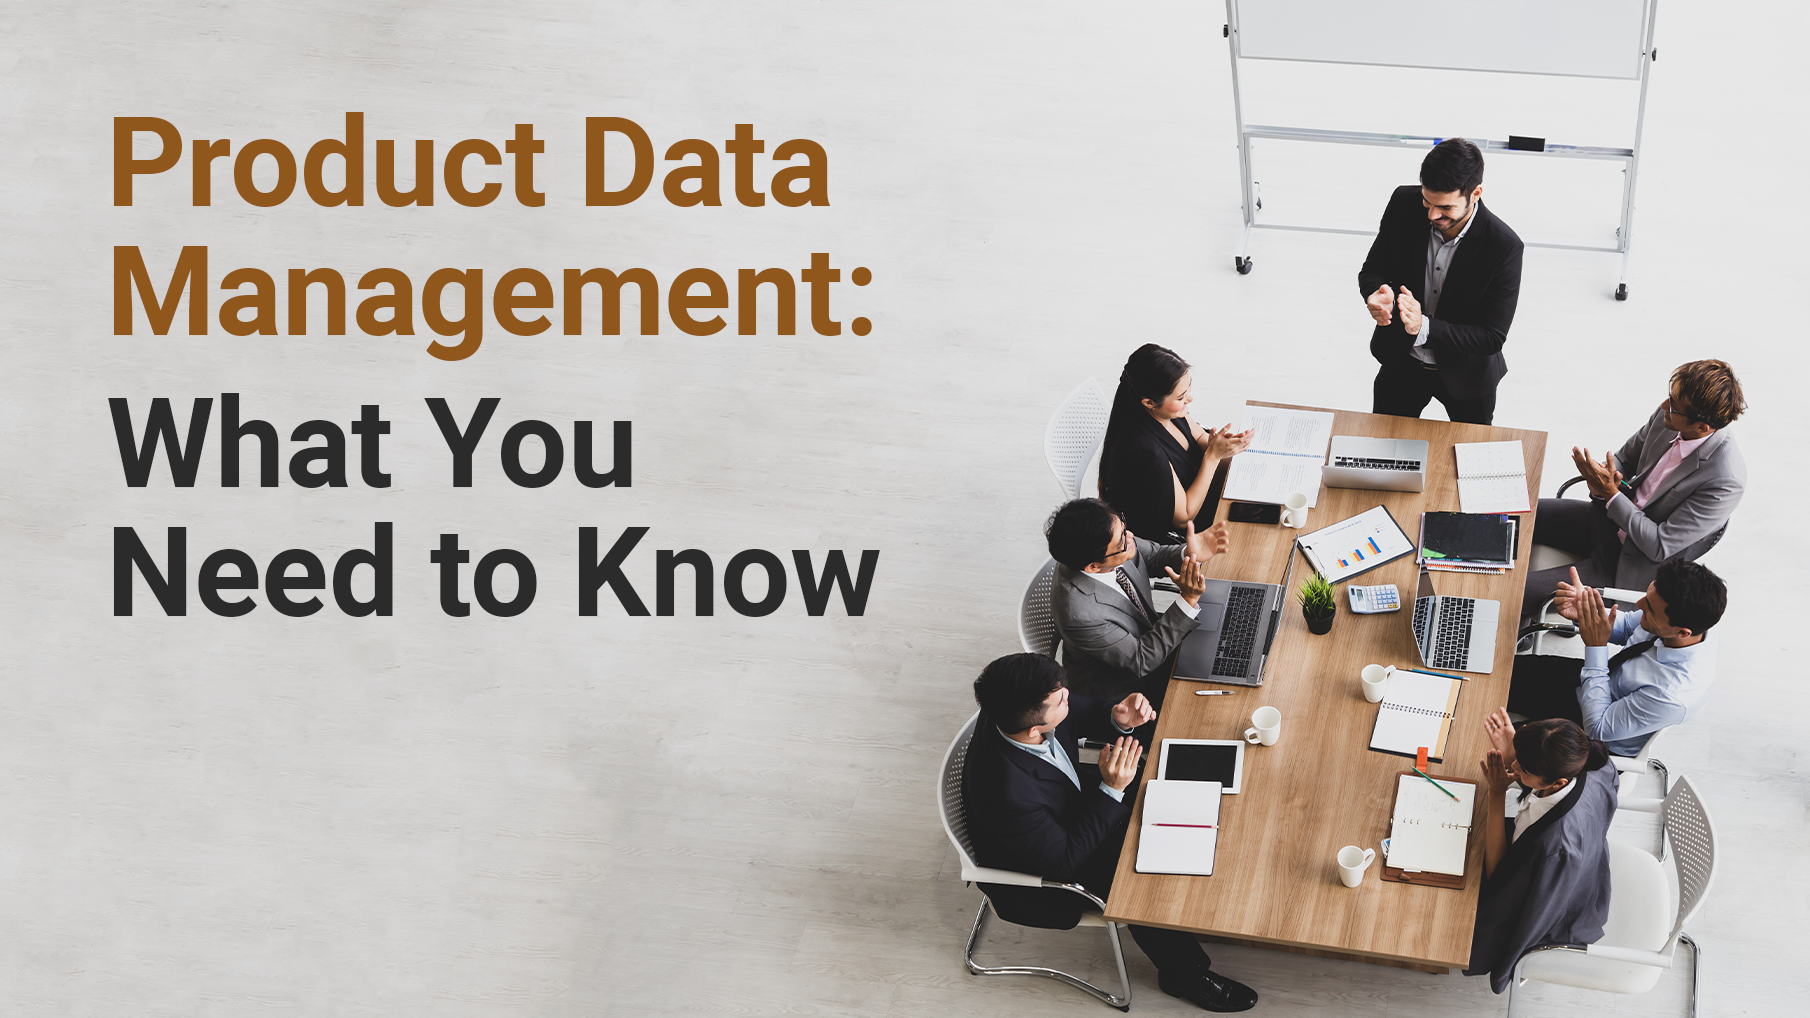 Product Data Management and Product Lifecycle Management